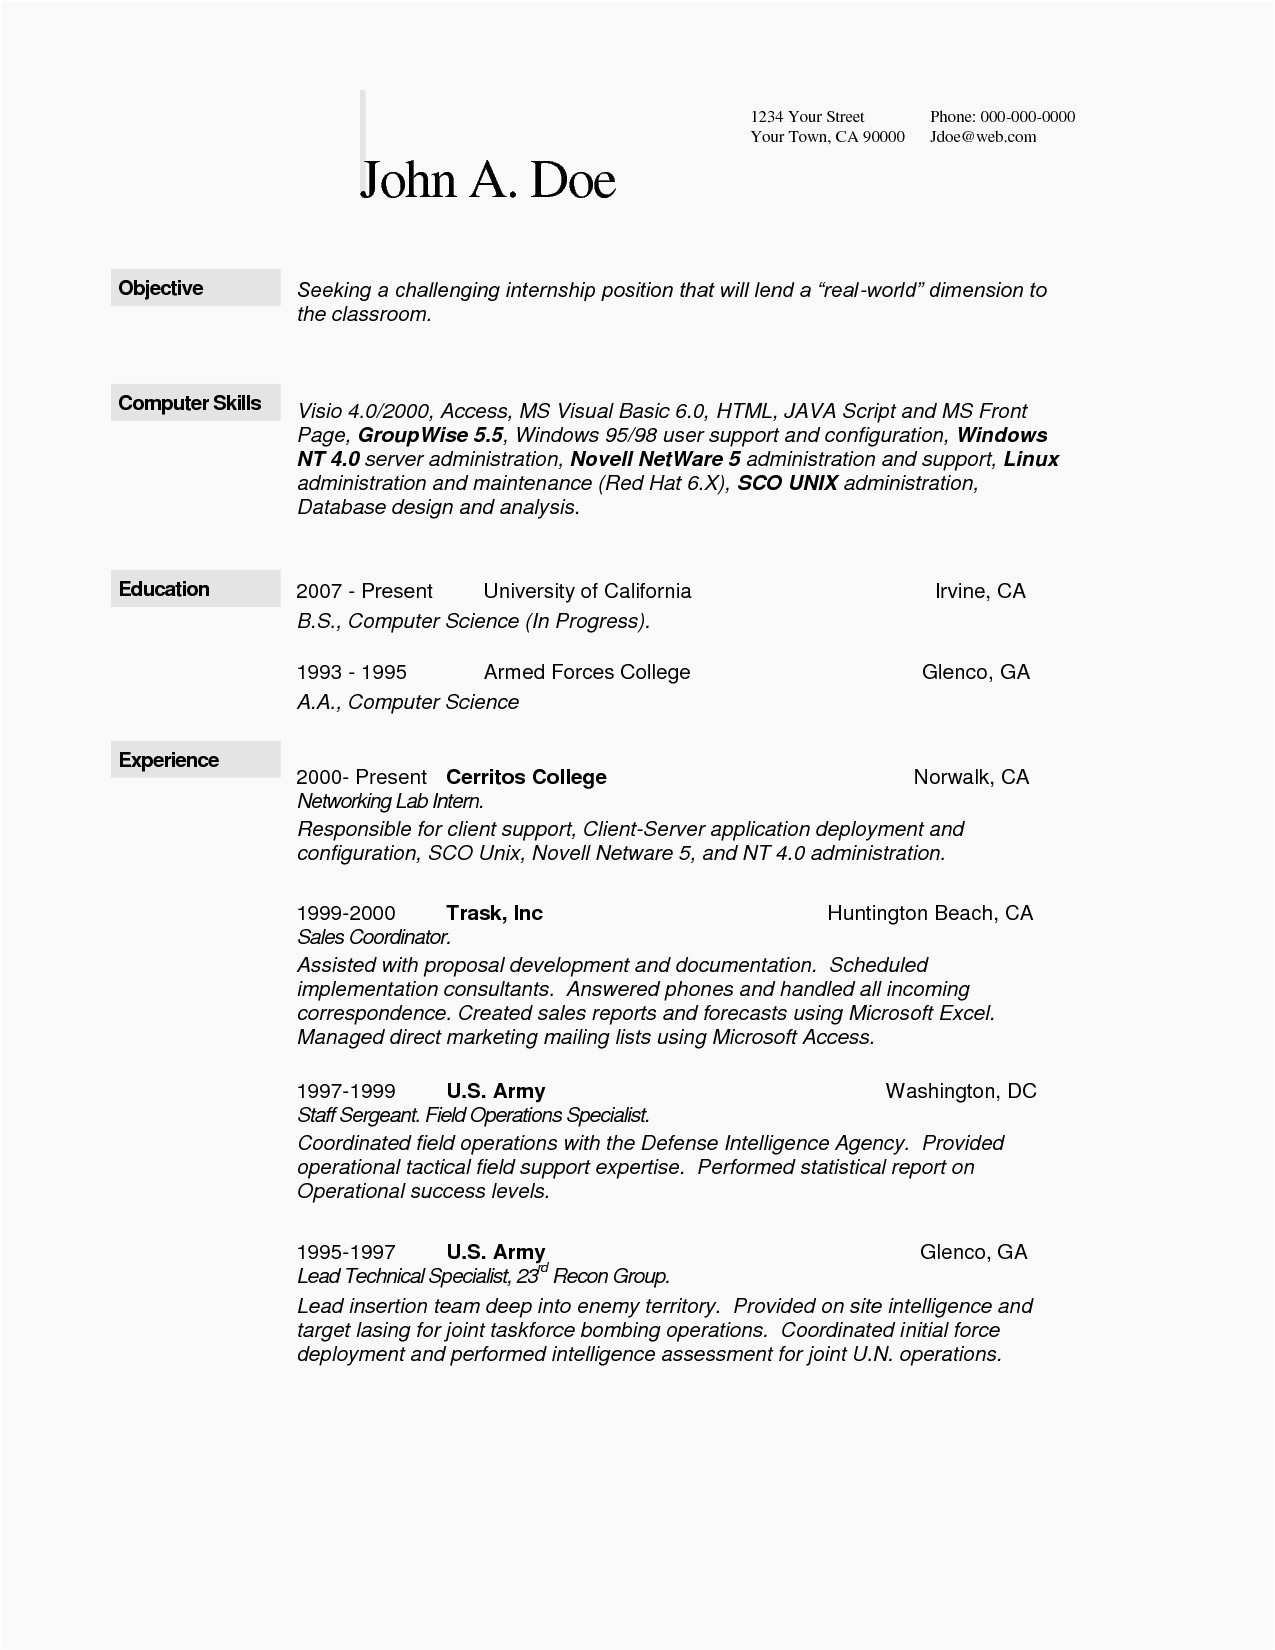 Targeted Resume Template Word - Resume Site Example Resume formats In Word New Keywords for Resumes